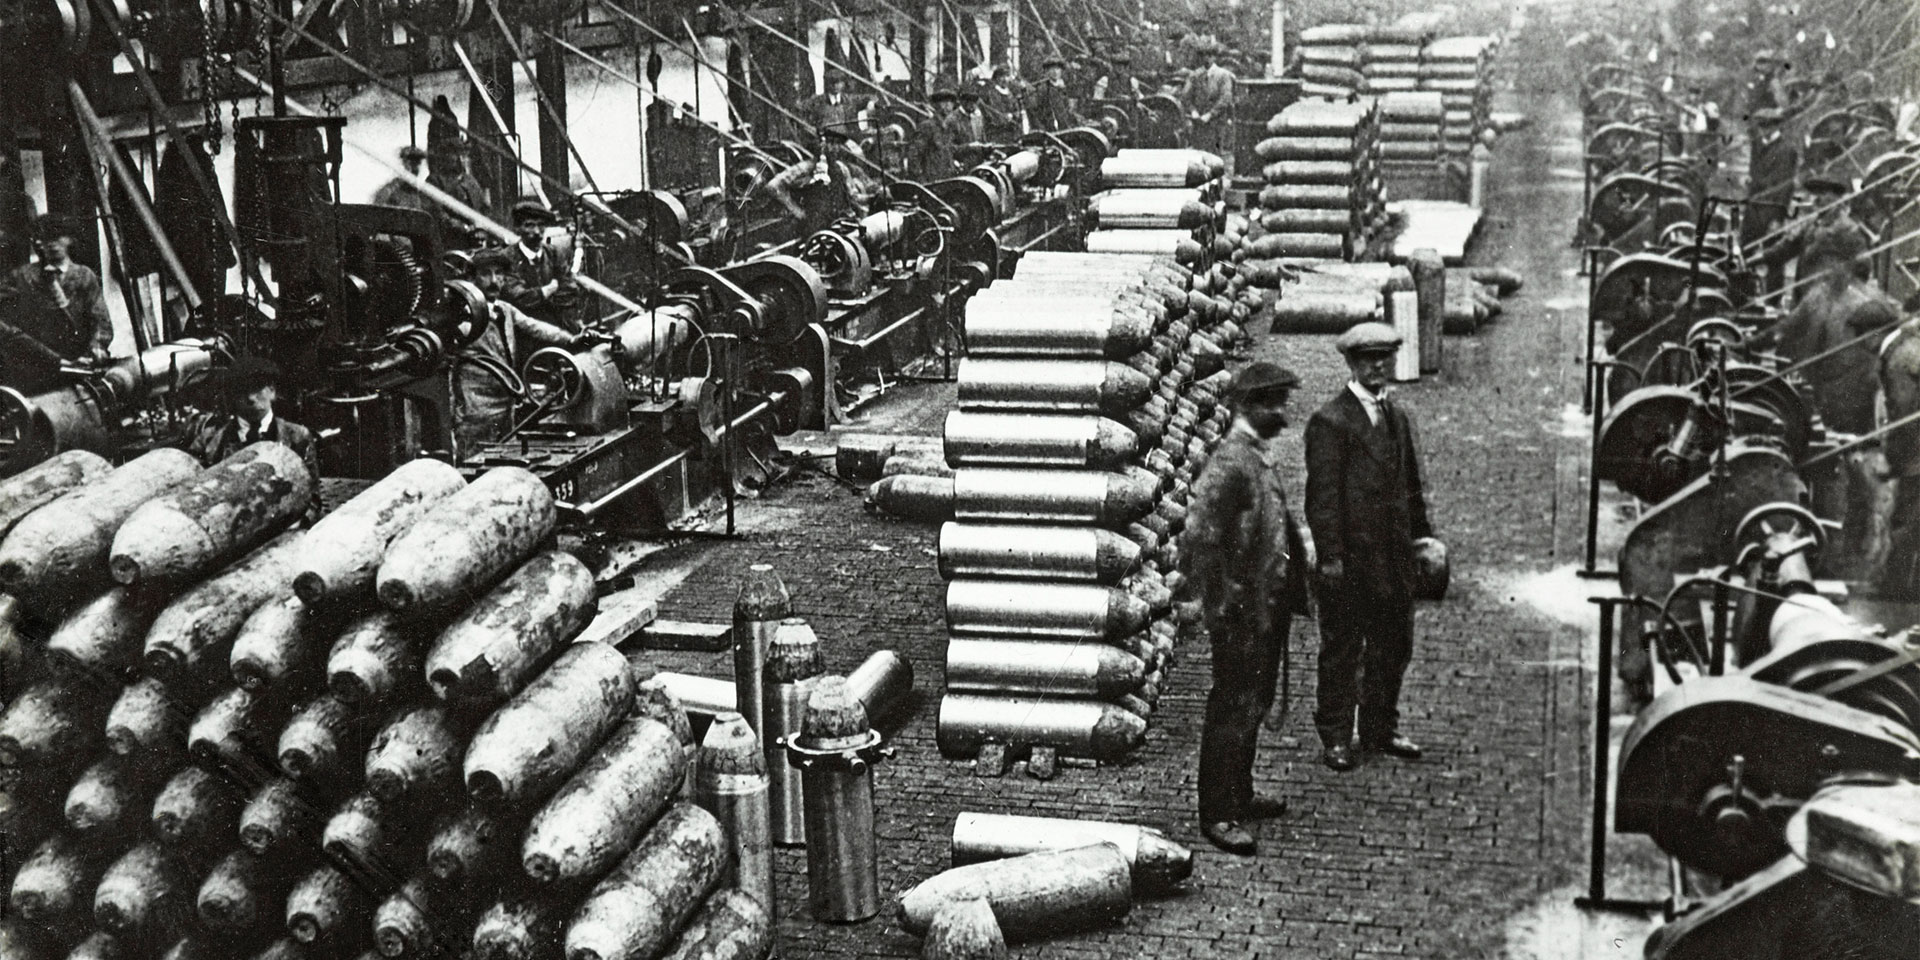 Shell production at Sir Robert Hadfield Ltd in Sheffield, 1914